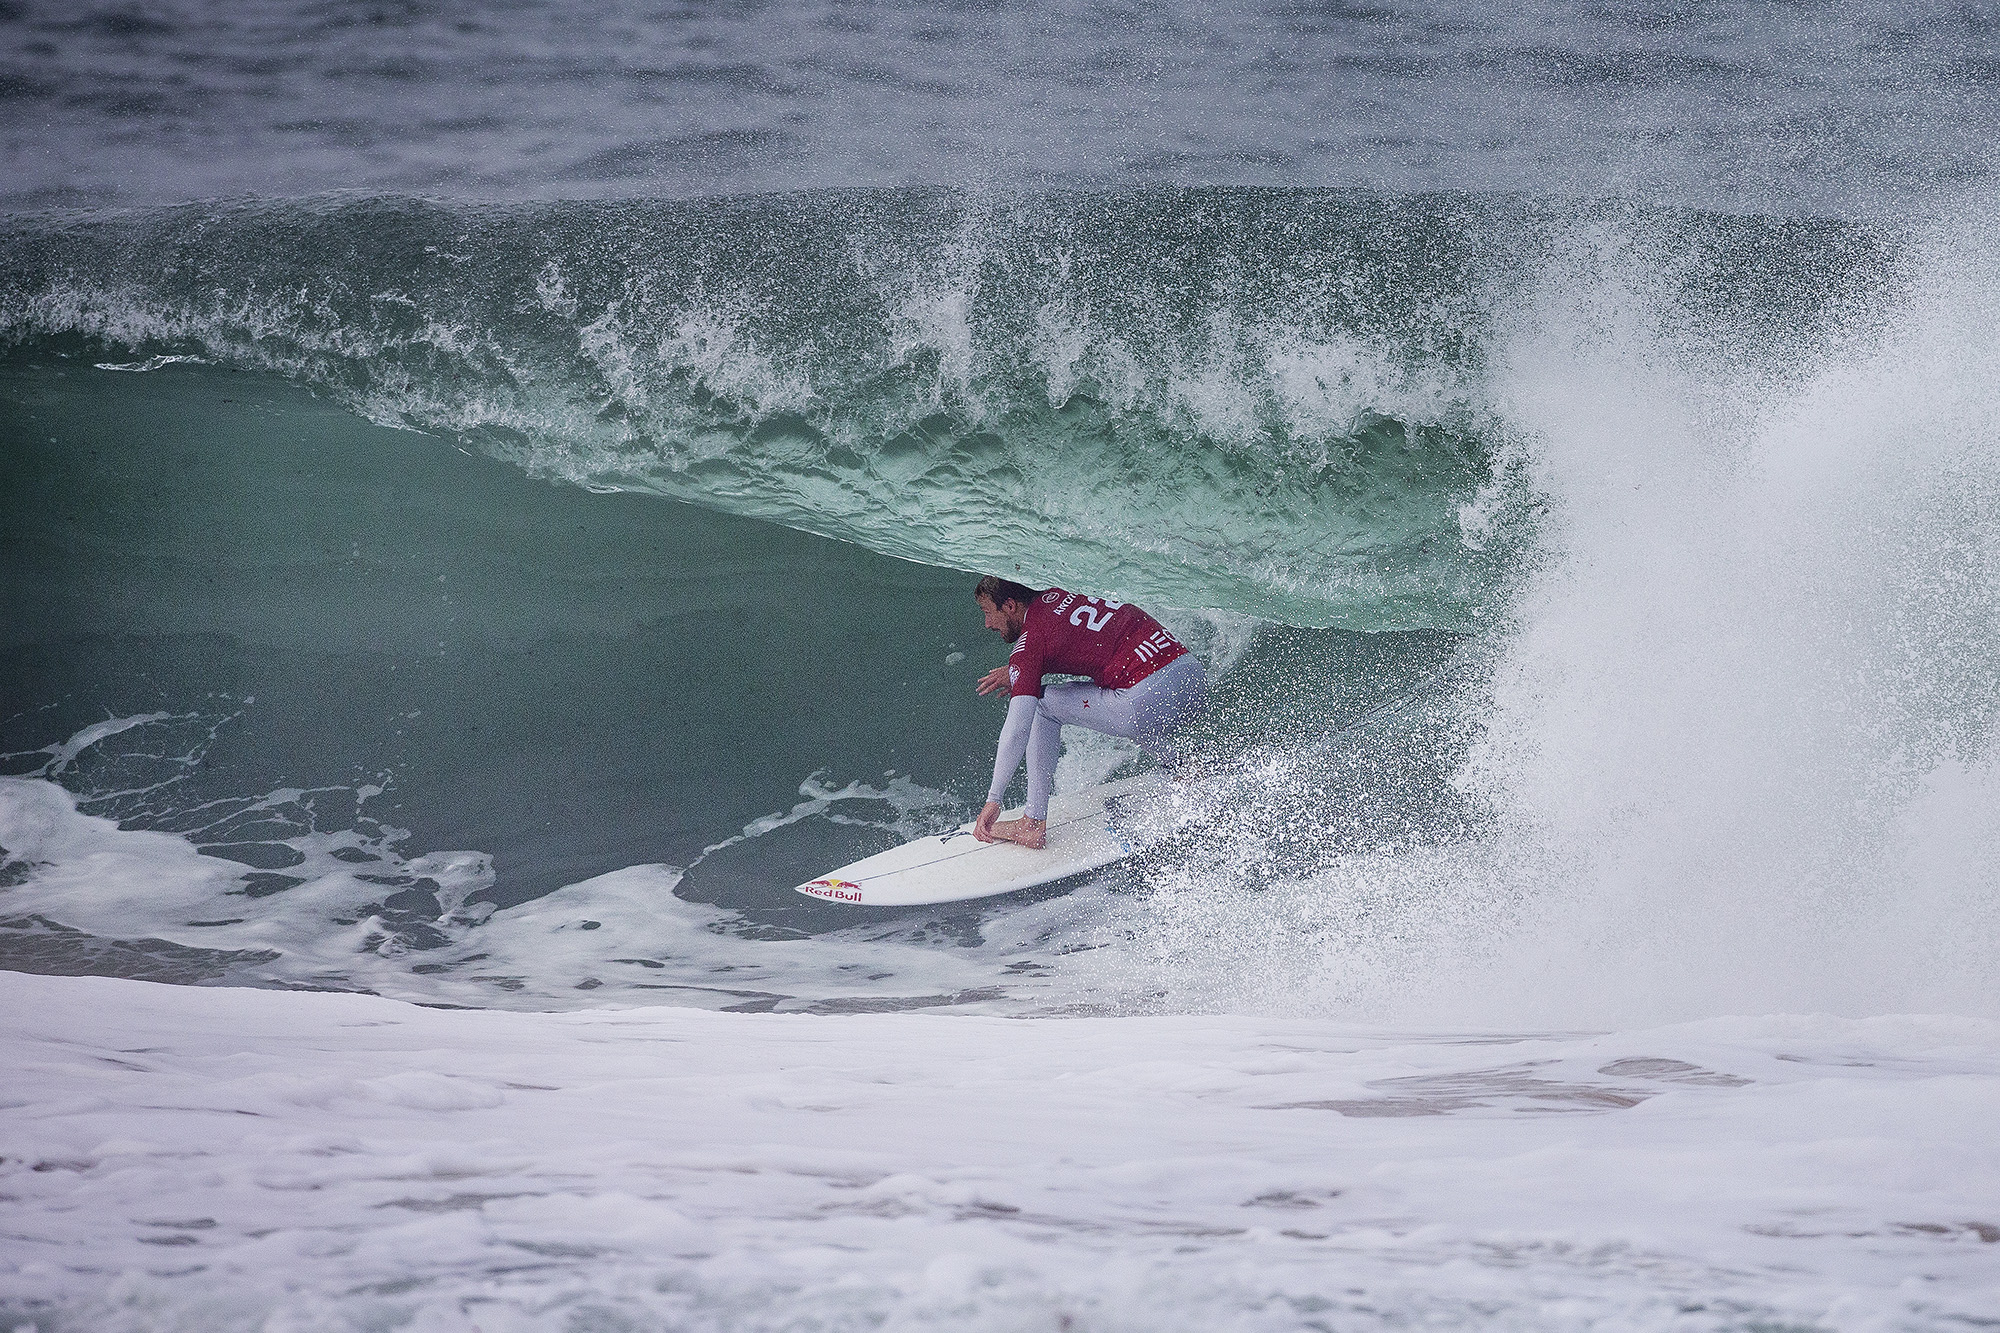 Rip Curl Pro Portugal Day 1. - Carvemag.com